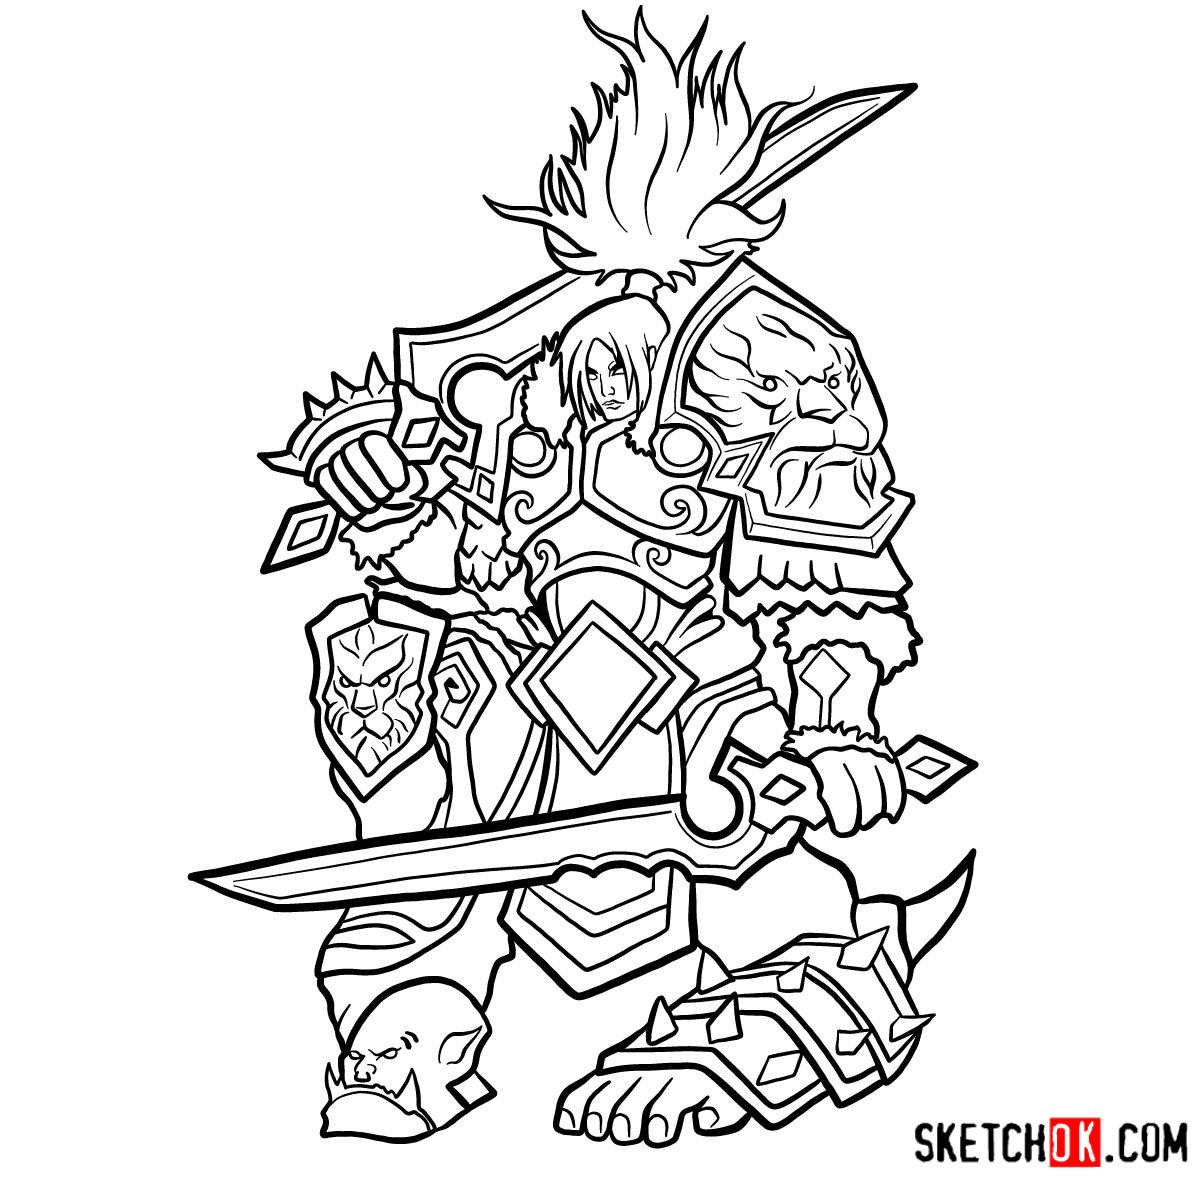 How to draw Varian Wrynn | World of Warcraft - coloring